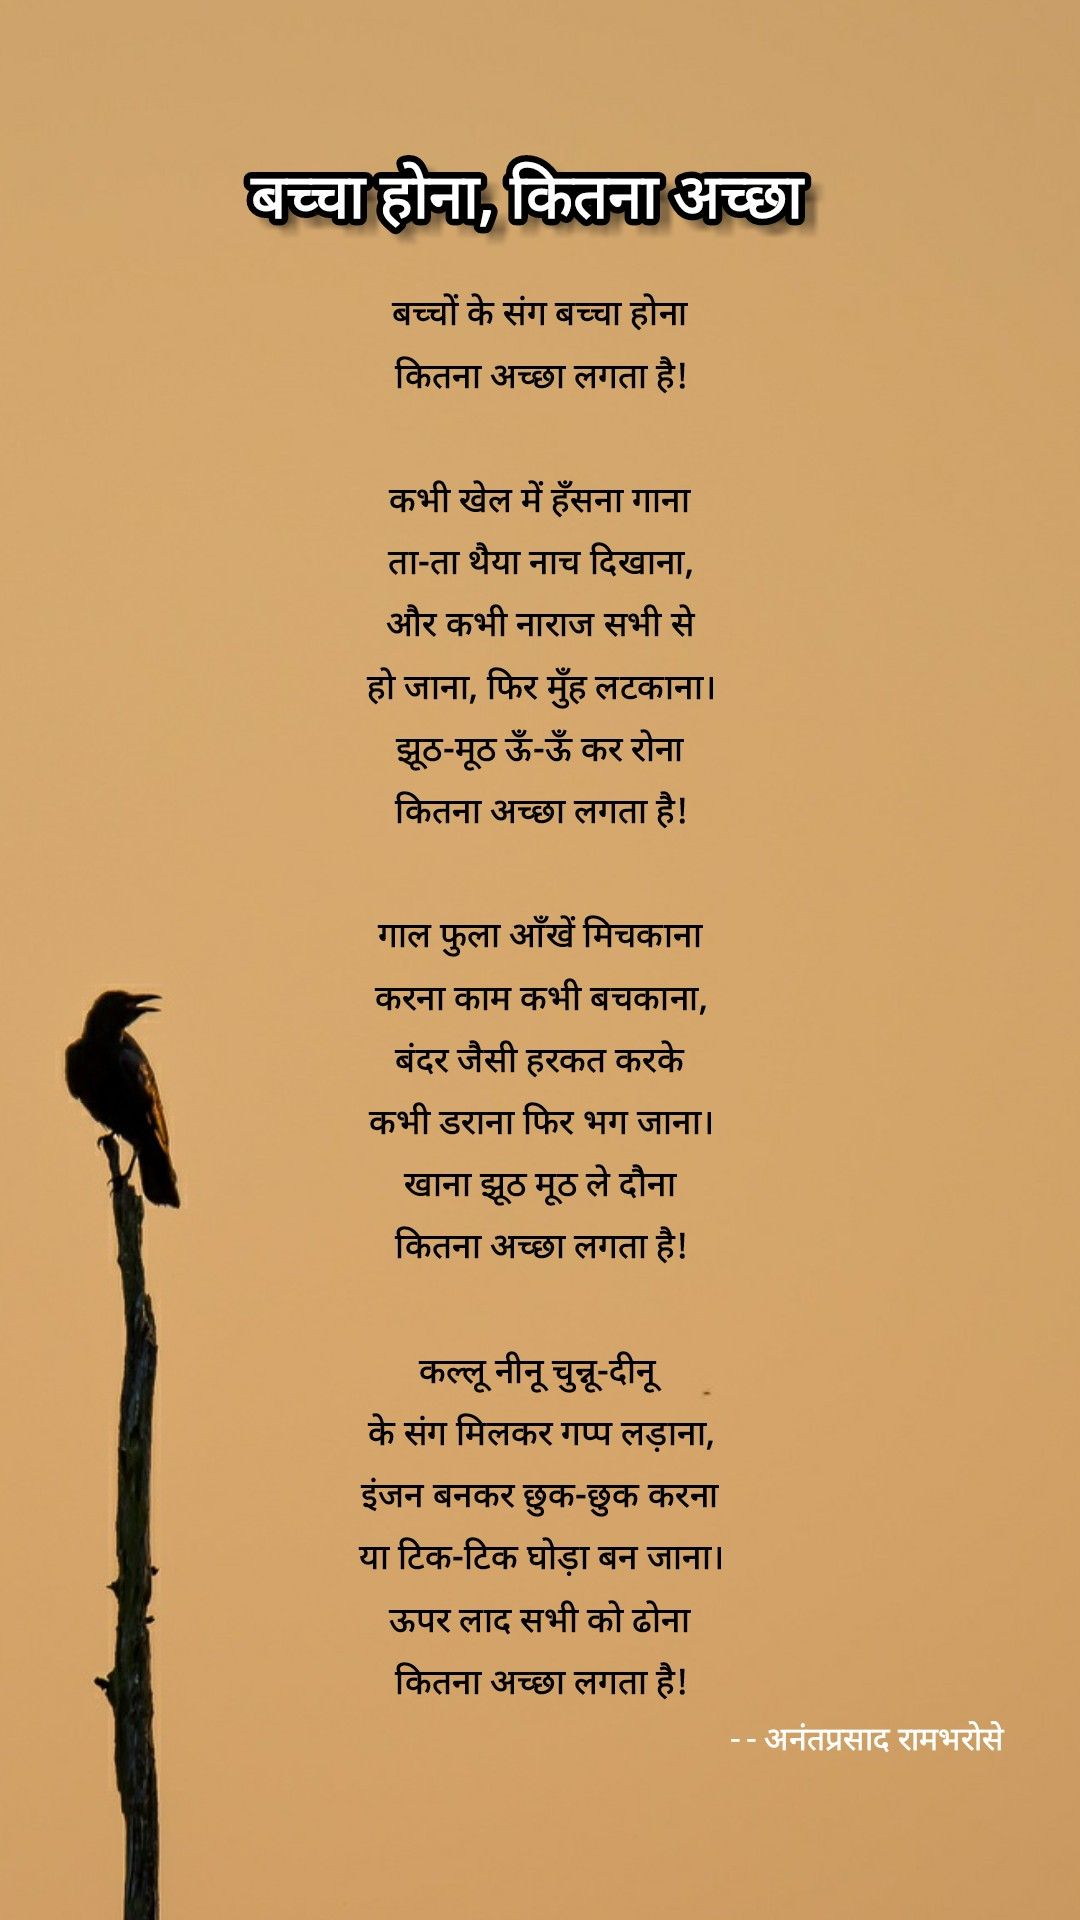 Awesome  Hindi Kavita Best Poems For Kids 2021 From Uploaded by user